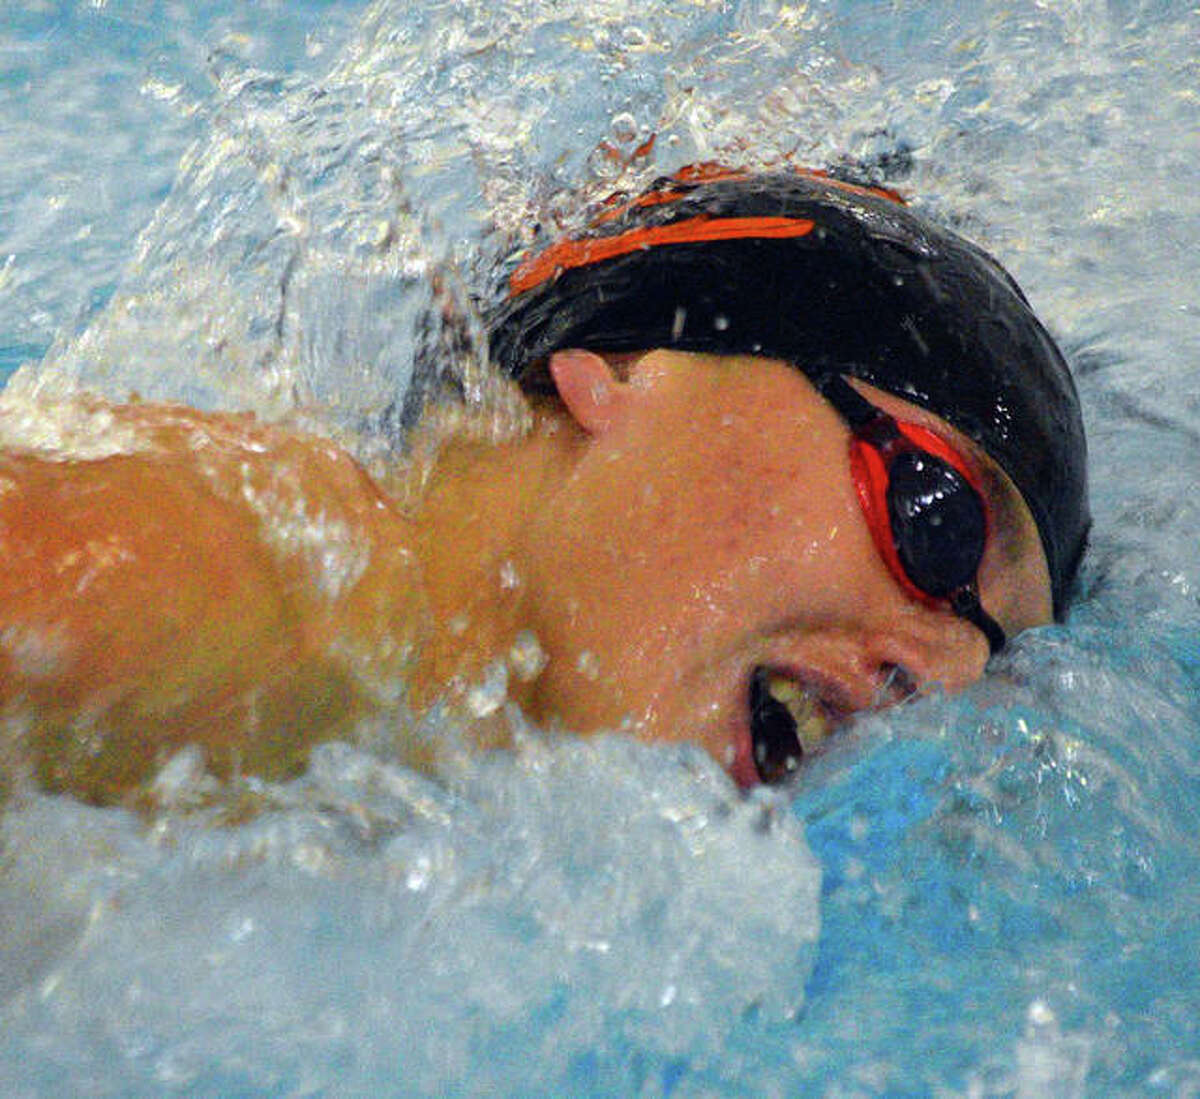 Edwardsville's Evan Grinter capped his junior season by winning the 50-yard freestyle and the 100-yard freestyle in the Region 4 Championship Meet on March 13 at Chuck Fruit Aquatic Center.